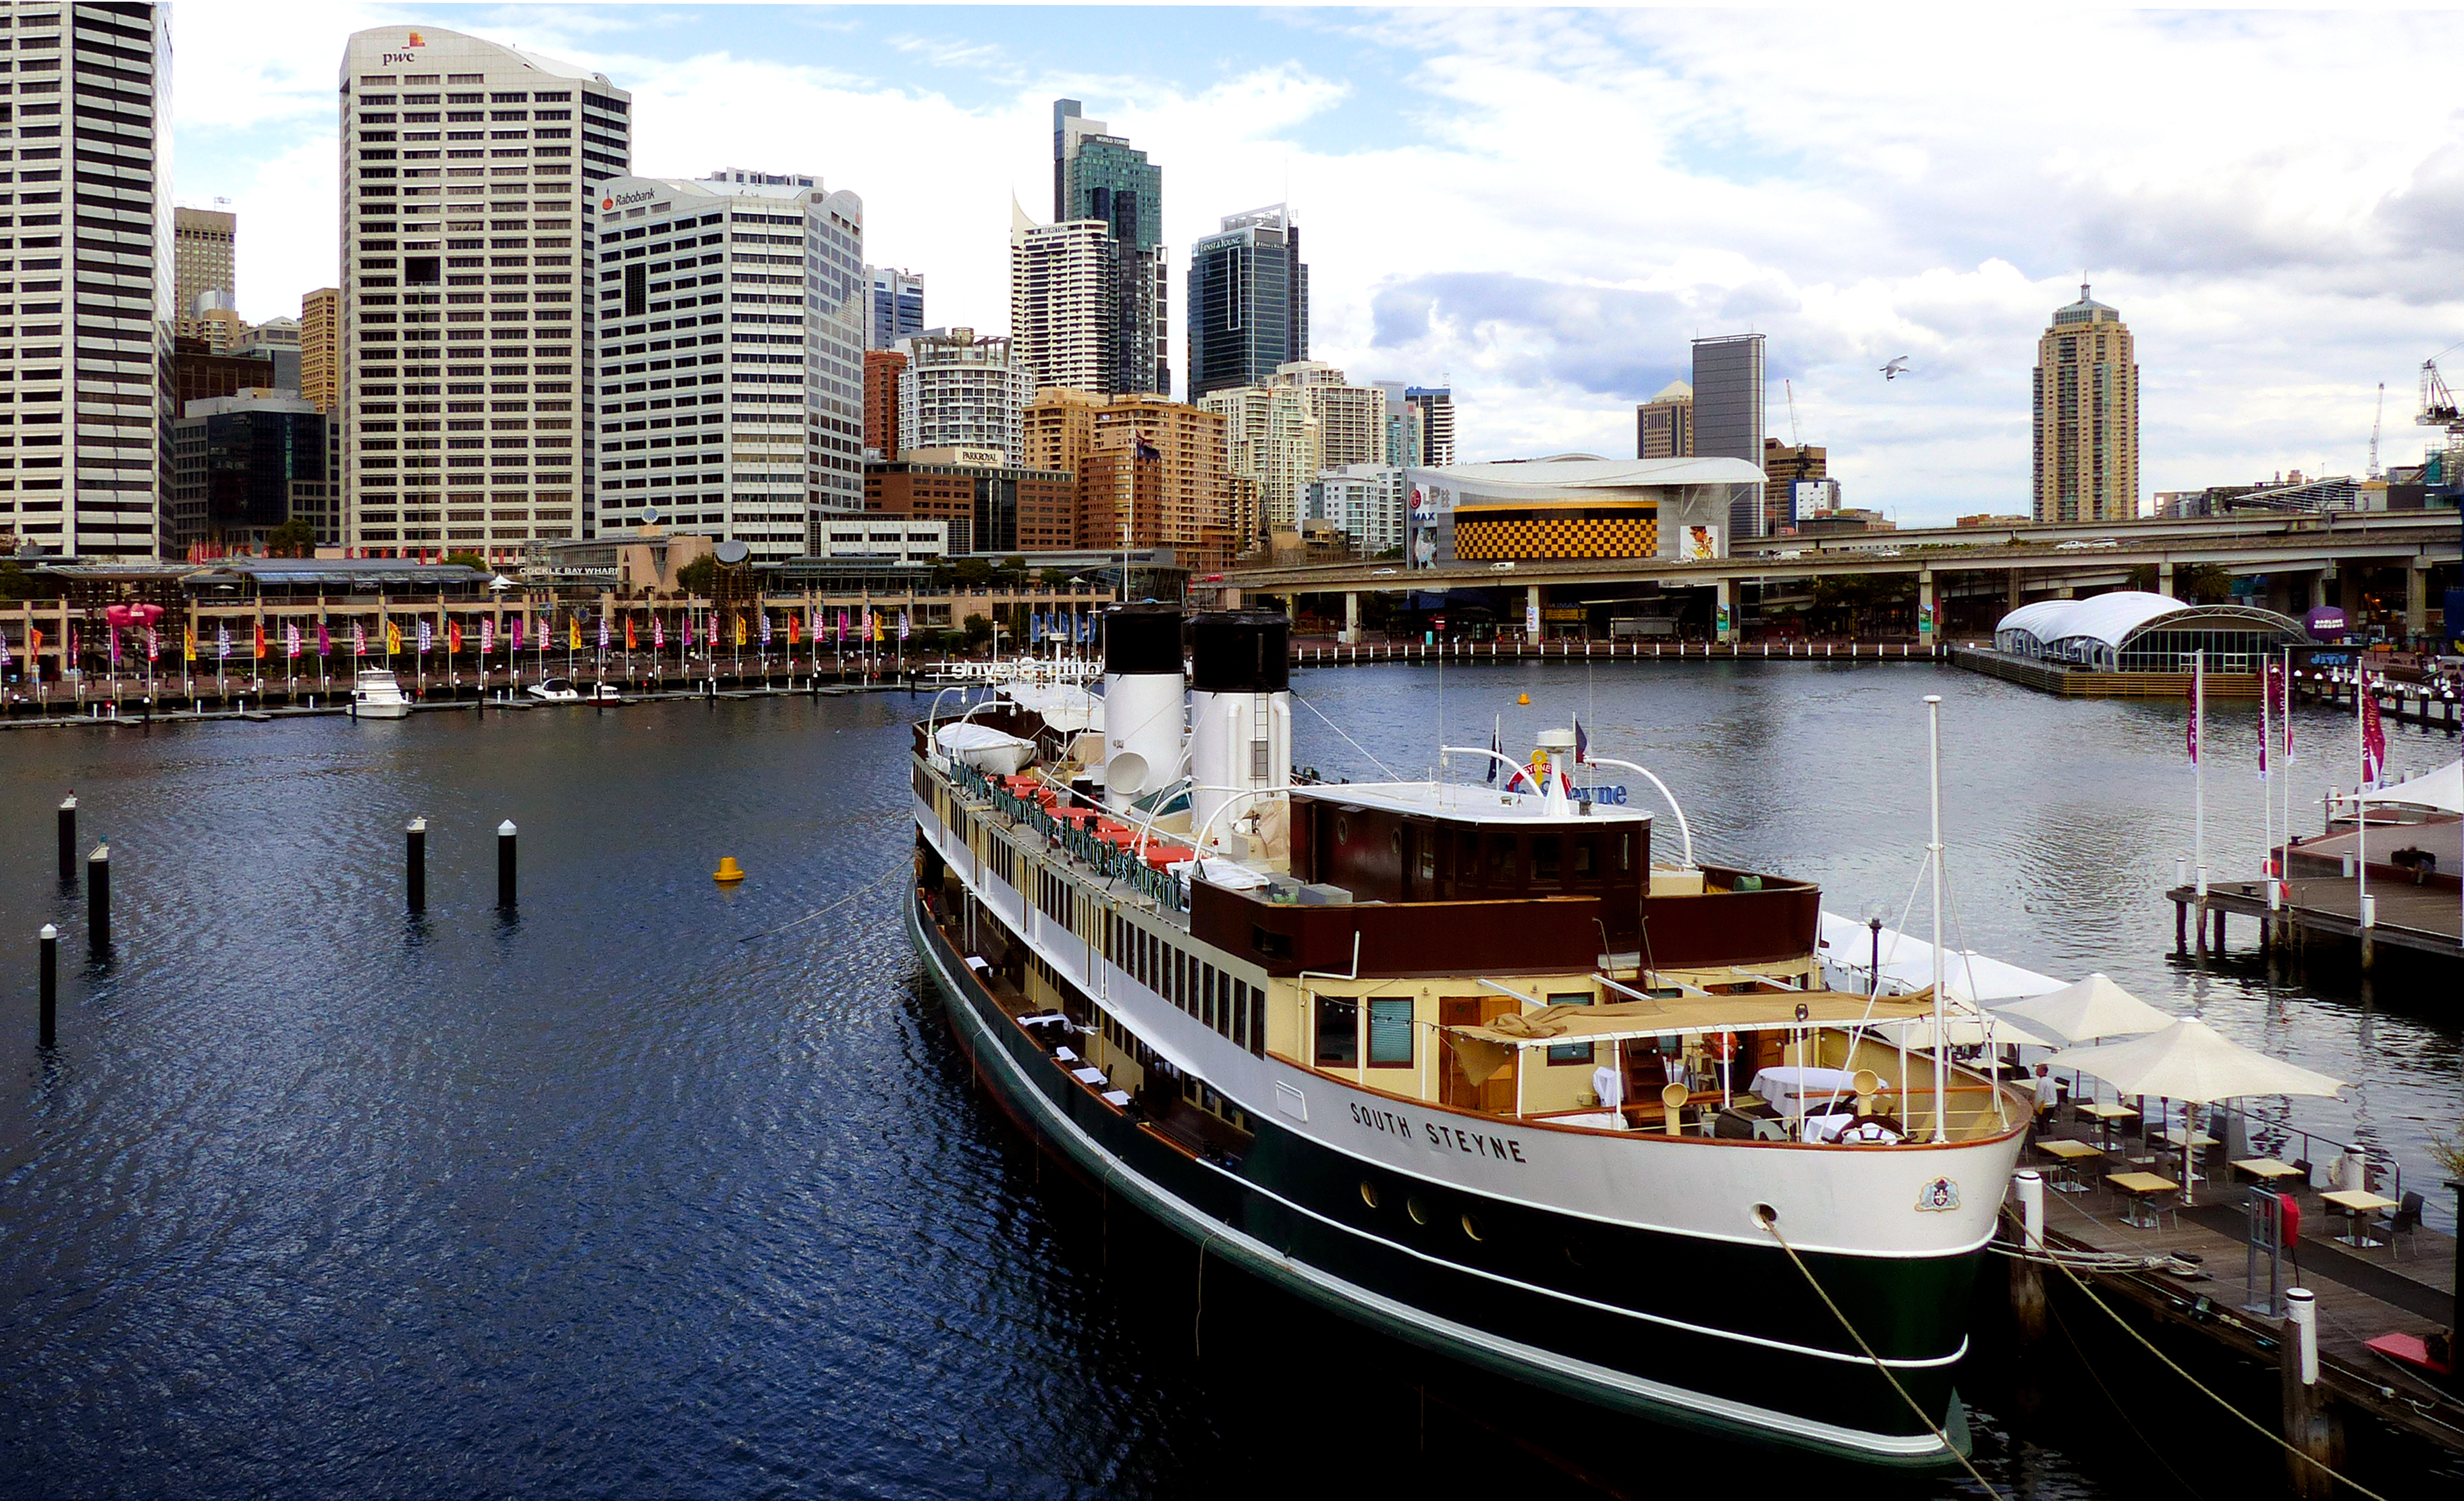 Darling harbour Sydney., Architecture, Boat, City, Cityscapes, HQ Photo